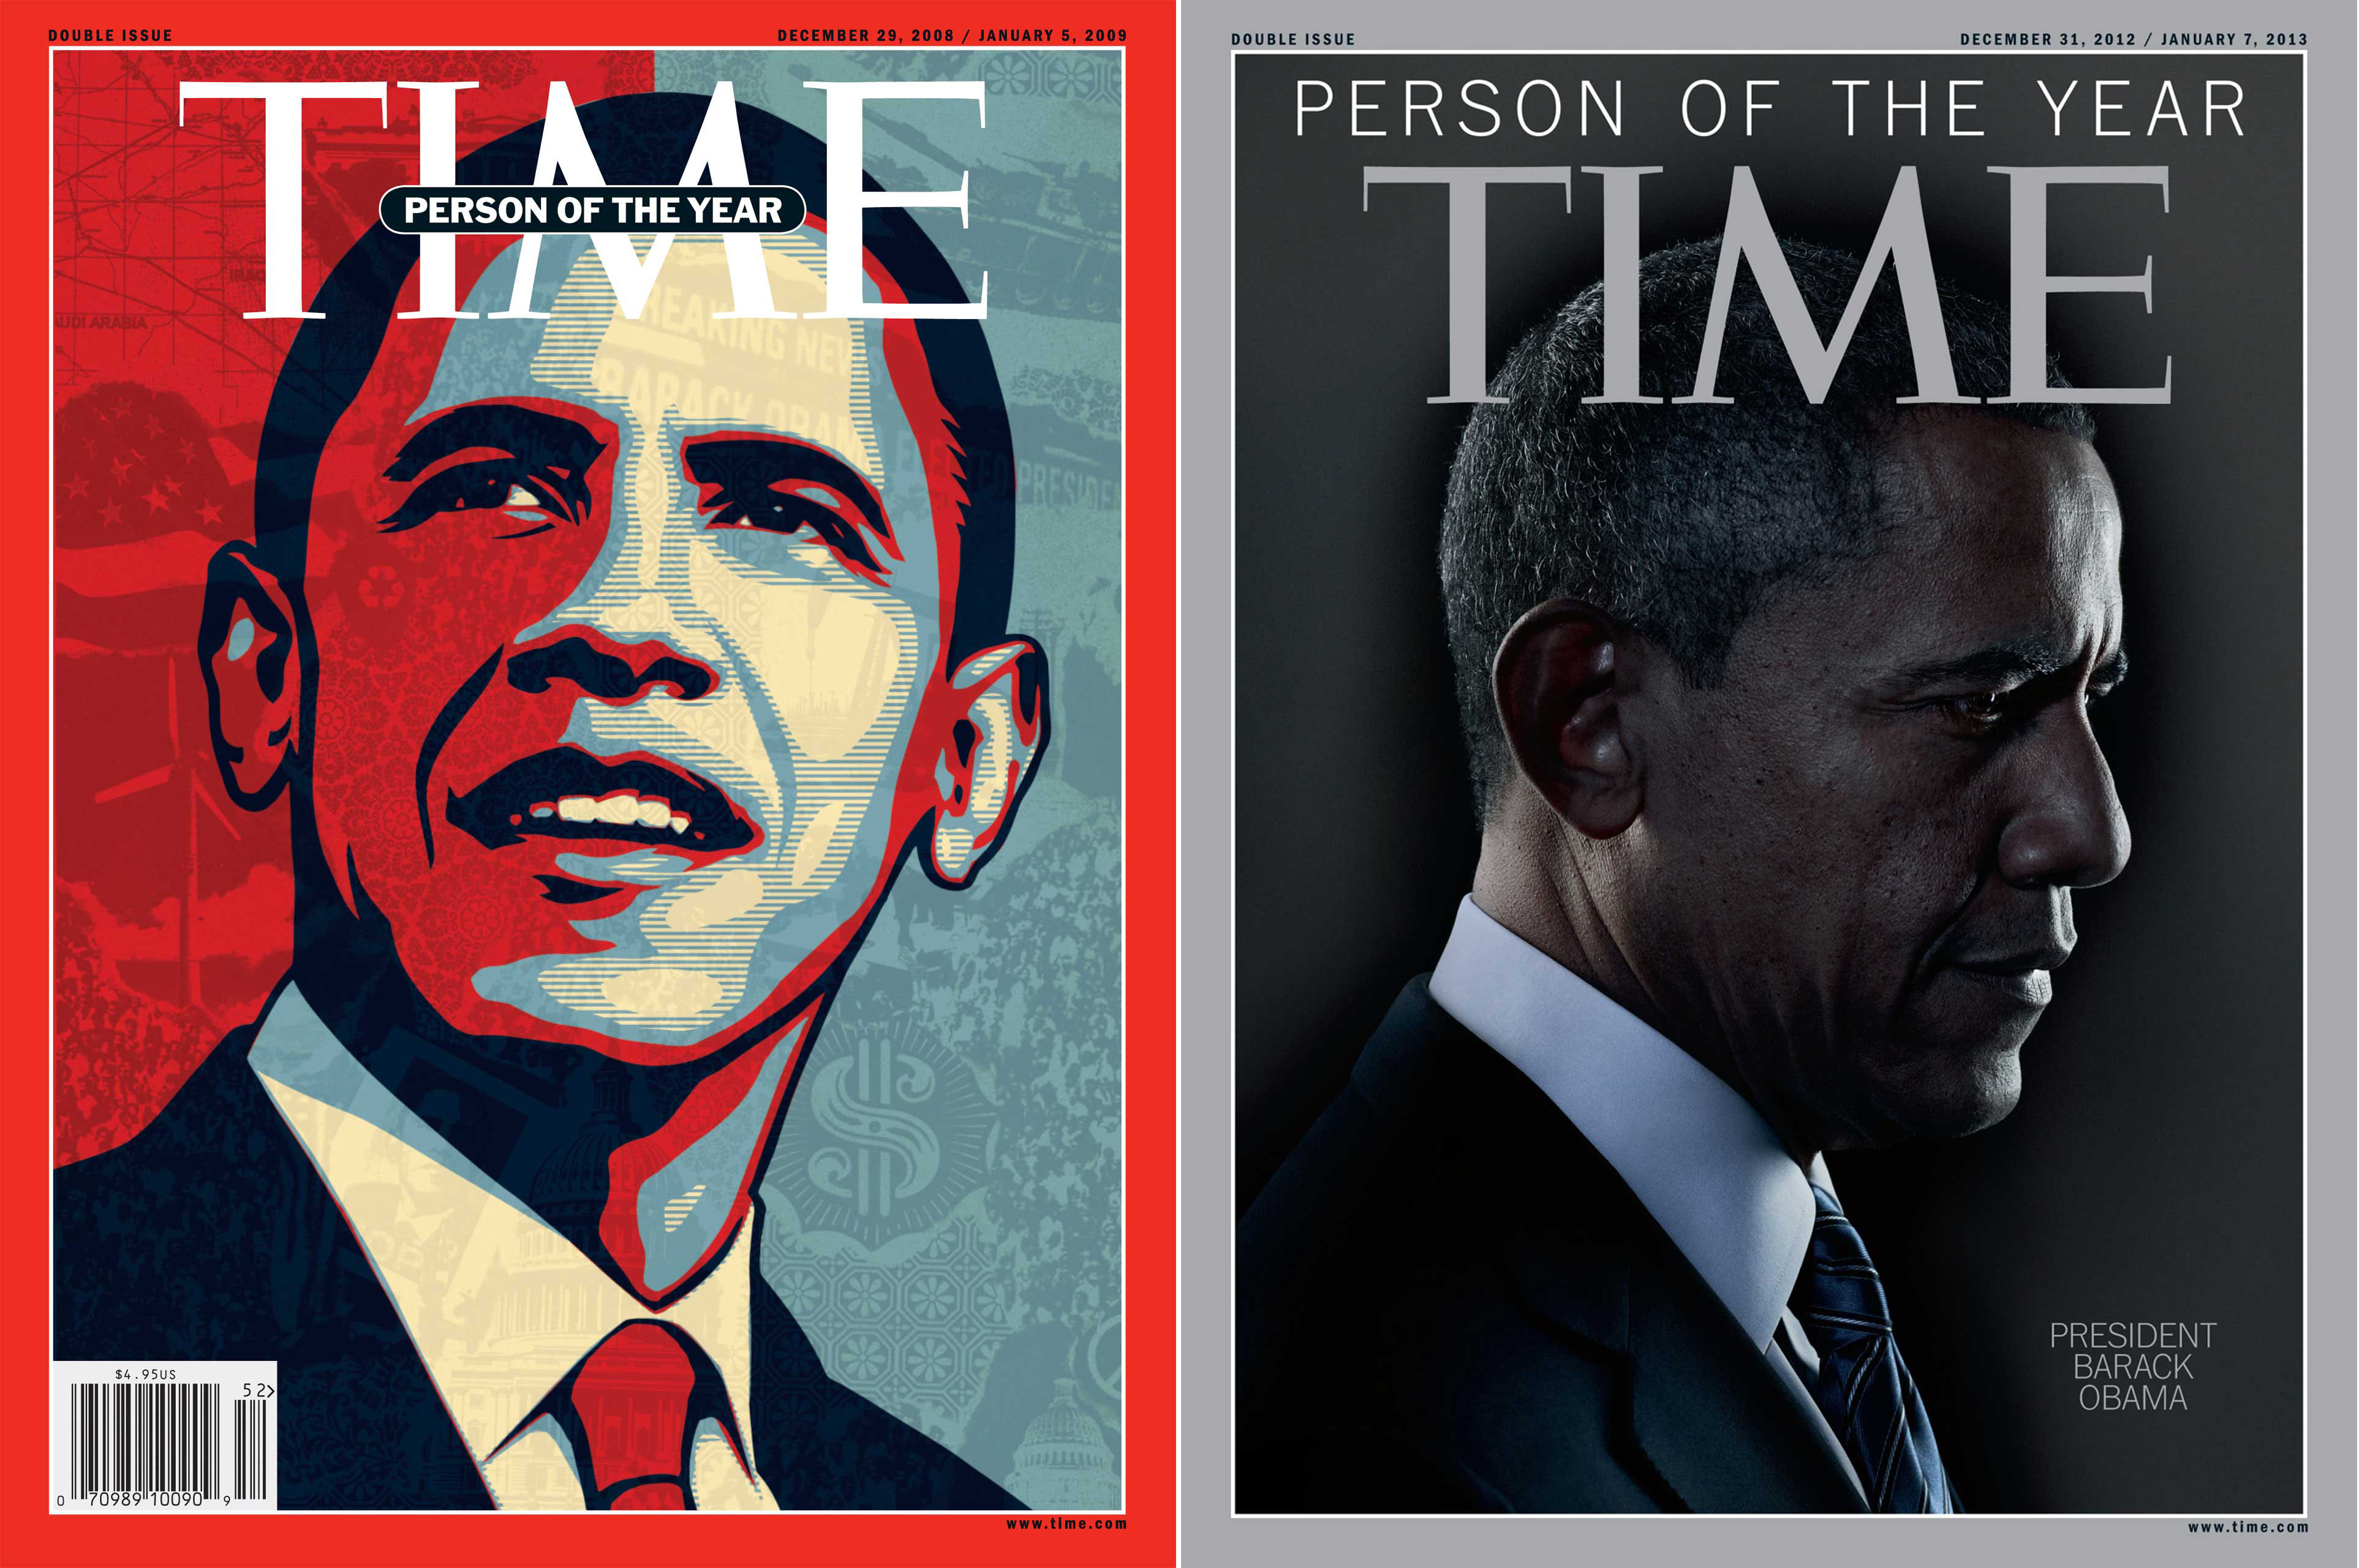 Obama POY Covers